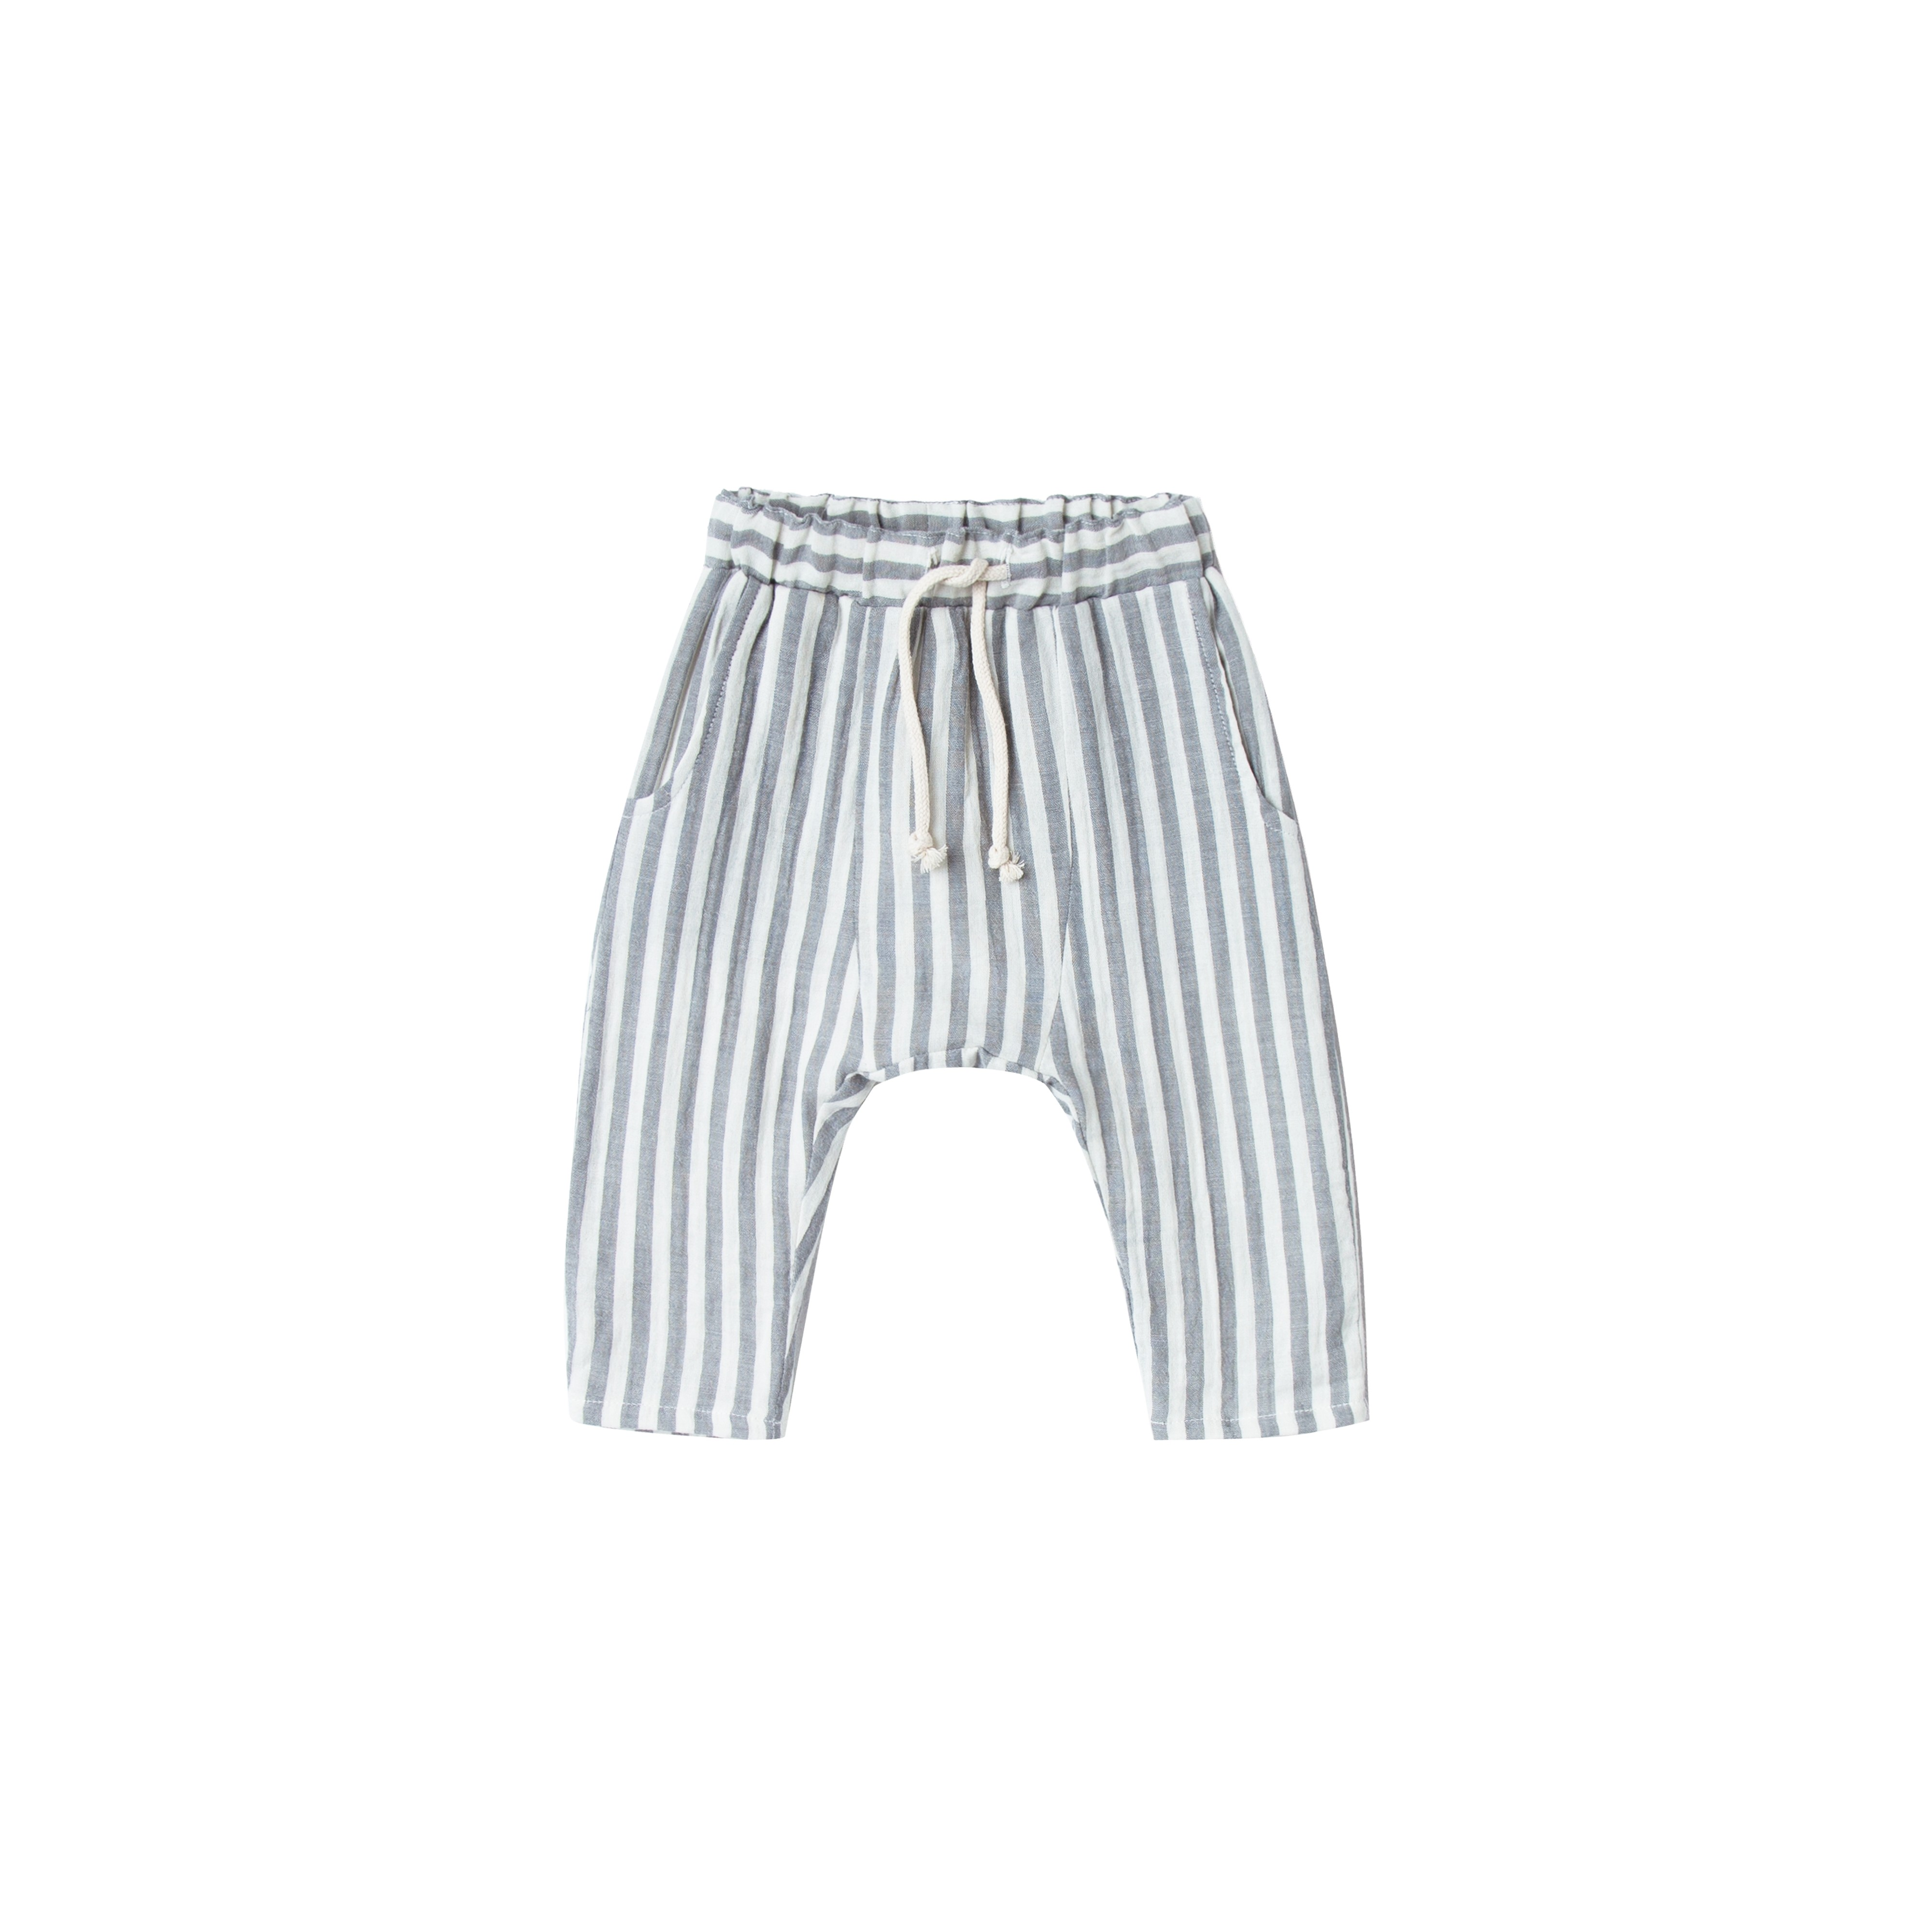 Rylee and Cru Hawthorne Trouser: Storm Stripe